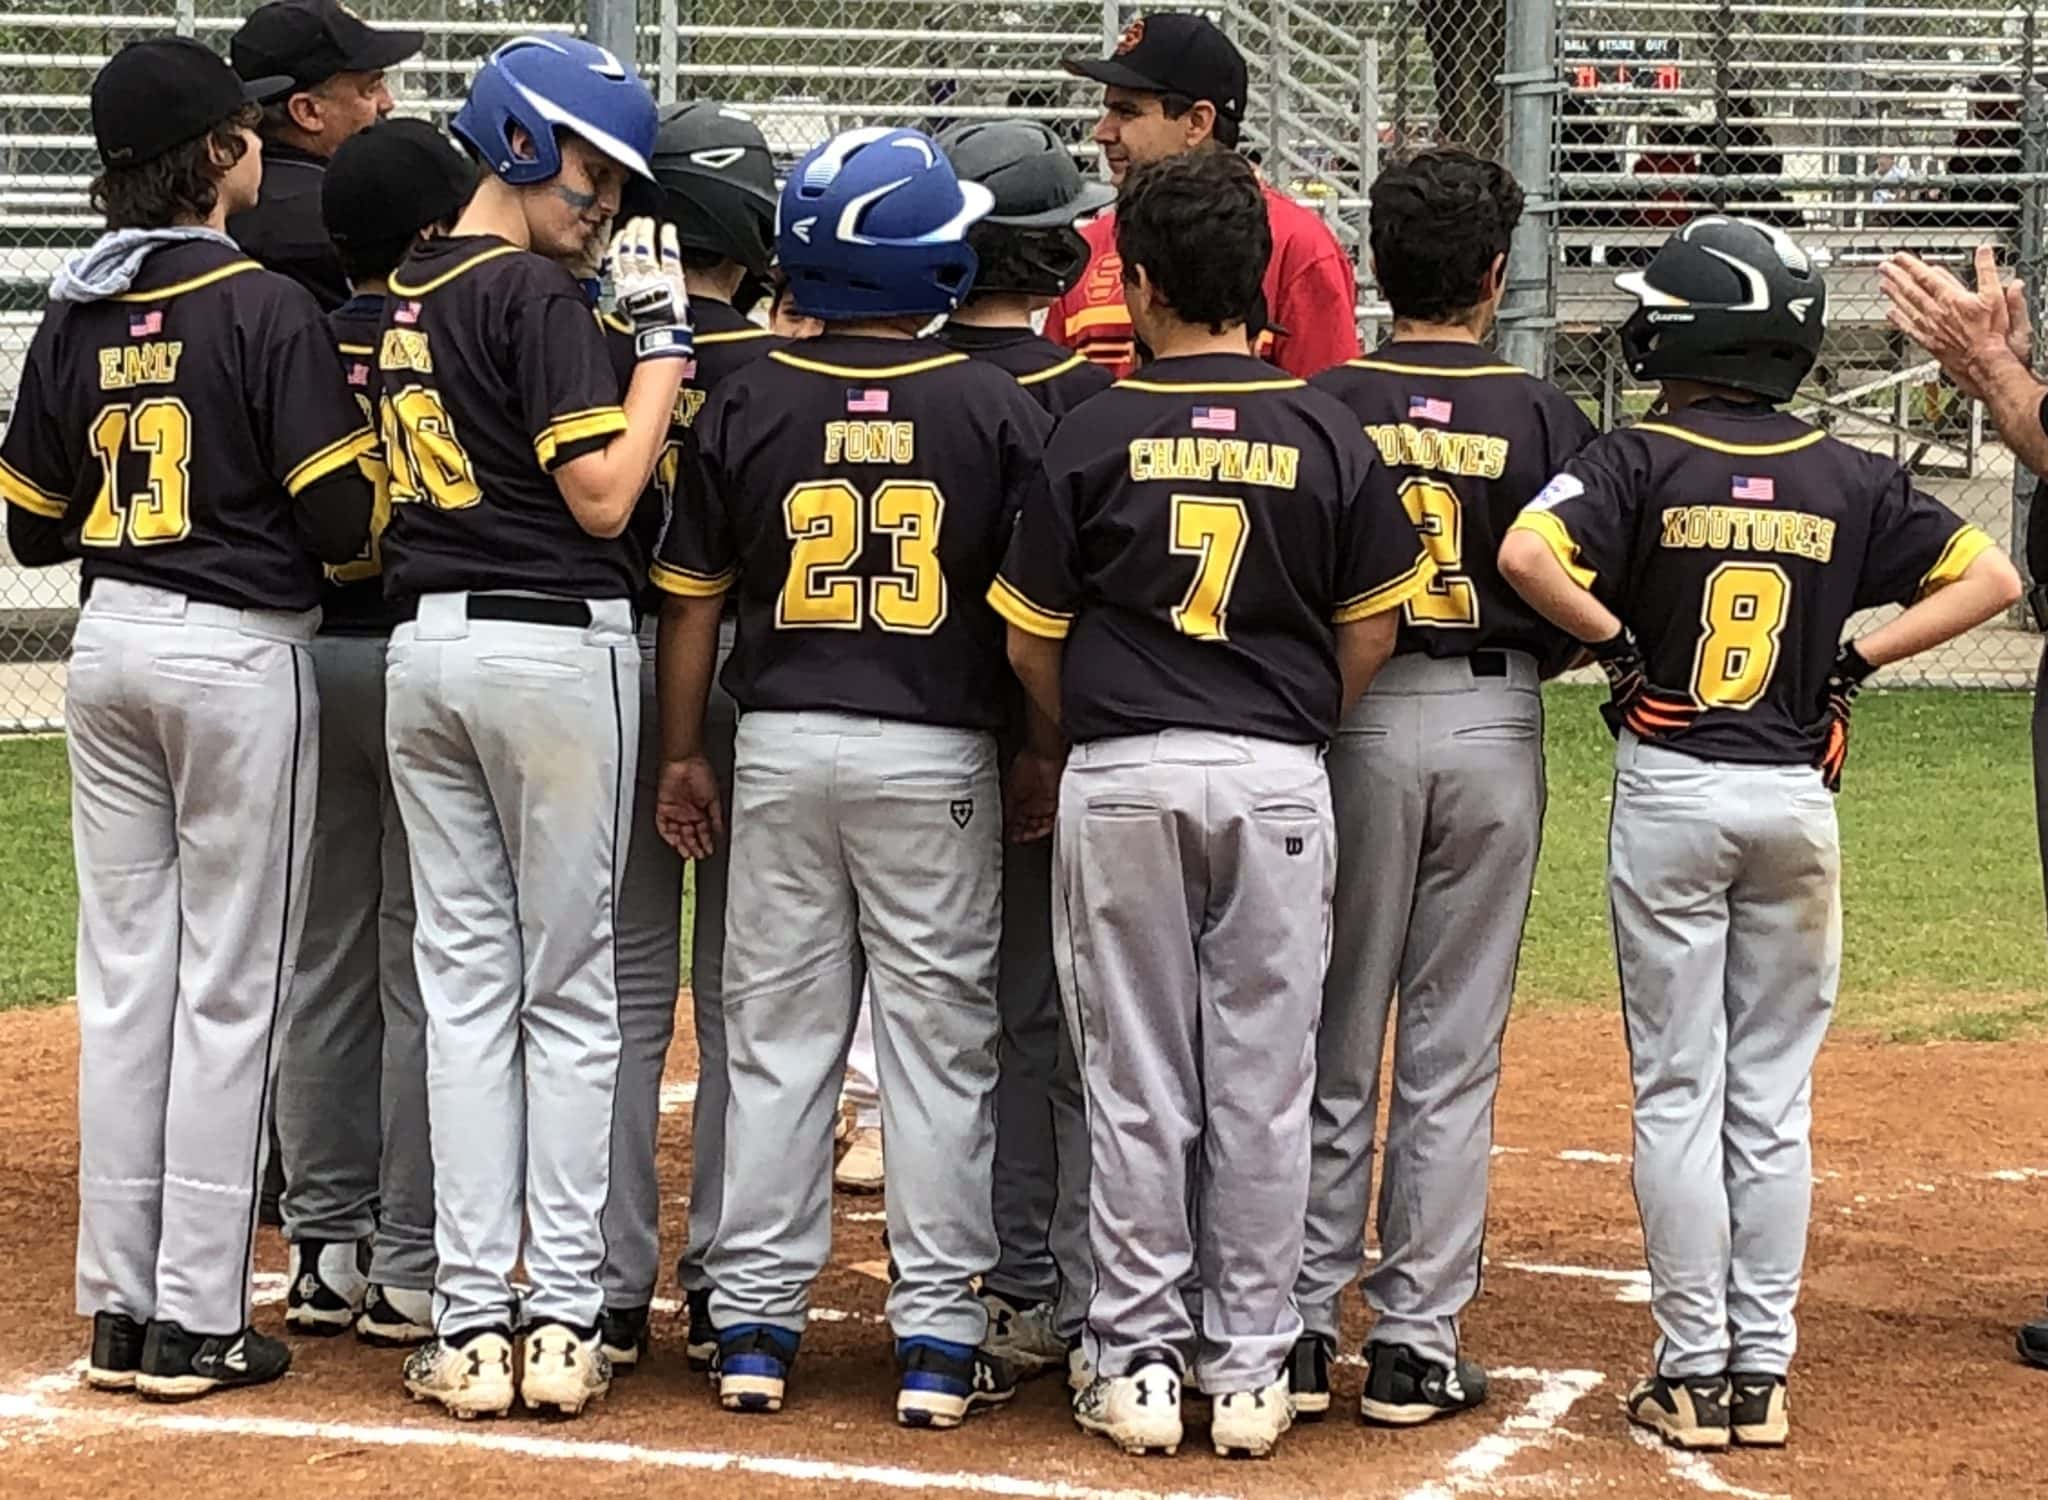 Delayed puberty: group of young baseball players meeting before a game